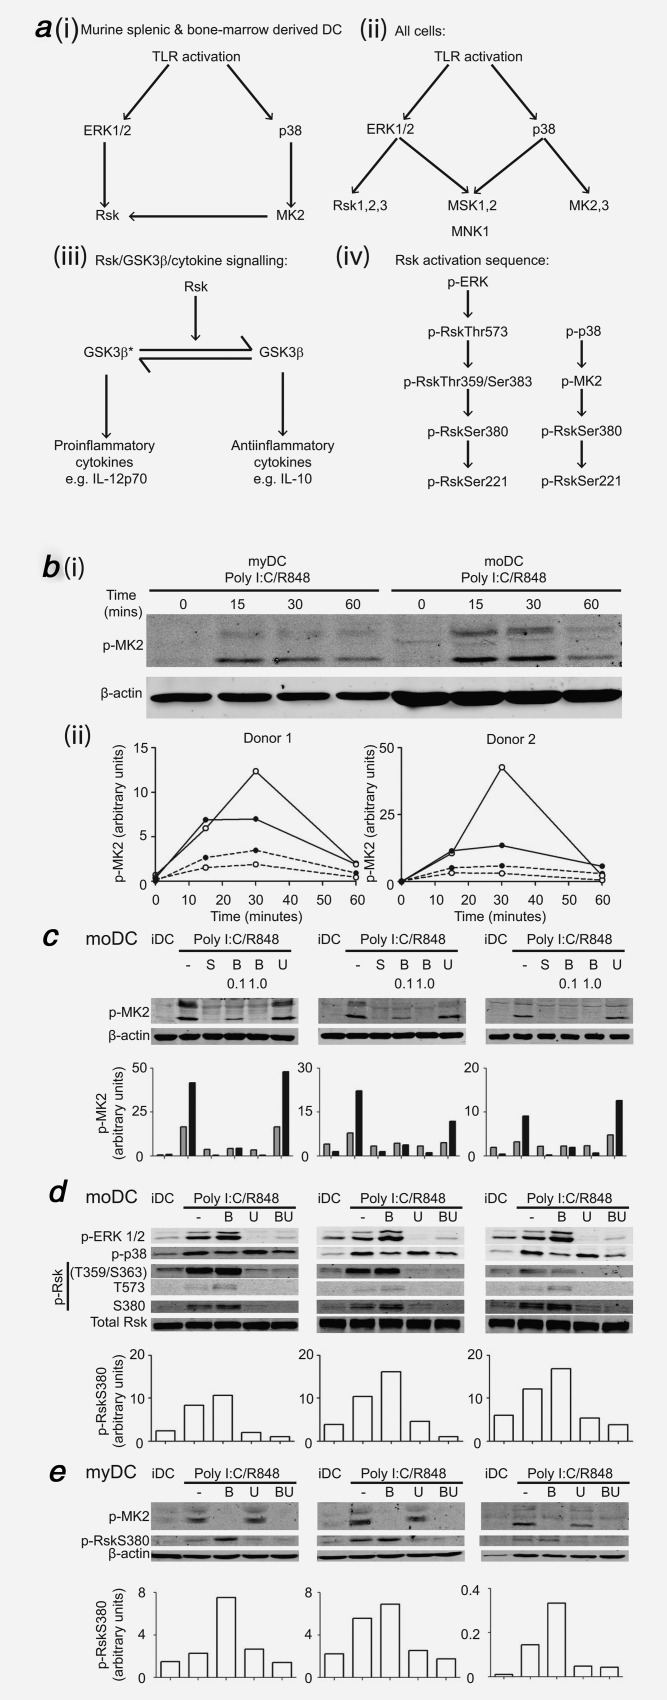 Comparison of intracellular signaling in myDC and moDC after TLR stimulation and effect of blockade of MAPK pathways in healthy donors. ( a ) MAPK/Rsk/GSK3β signaling. ( i ) Activation of Rsk by both ERK and p38 following TLR ligation in murine splenic and bone-marrow derived DC (arrow = activation), ( ii ) Signaling downstream of ERK and p38 in all other cells after TLR ligation where Rsk is only activated by ERK, ( iii ) Rsk drives GSK3β from the active form (GSK3β*) to the inactive form (GSK3β) with downstream effects on IL-12p70/IL-10 secretion, ( iv ) Sequence of phosphorylation/activation of Rsk by phospho-ERK (p-ERK) and phospho-p38 (p-p38). ( b ) Timecourse of MK2 activation following TLR stimulation in myDC and moDC. Donor-matched myDC and moDC (10 5 ) were stimulated with poly I:C/R848 for the indicated times before Western blotting. To allow cell-for-cell comparison between myDC and moDC, entire samples were used in a single Western blot and probed for phospho-MK2 (p-MK2) with β-actin as a loading control. Infrared secondary antibodies were used to allow for semi-quantitative analysis normalized to loading control. ( i ) Scanned images for one donor of two. ( ii ) Normalized p-MK2 for two donors, open circles = myDC, filled circles = moDC, dotted line = upper p-MK2 band, solid line = lower p-MK2 band. ( c ) Effect of blockade of p38 or MEK on MK2 activation following TLR stimulation in moDC. MoDC were pre-treated with p38 inhibitors SB203580 10 µM (S), BIRB0796 (B) 0.1 or 1.0 µM or MEK inhibitor UO126 10 µM (U) for 1hr followed by poly I:C/R848 stimulation for 30 min then Western blotted for p-MK2 with β-actin loading control as in ( b ). Shown are scanned images for three independent donors and graphs of normalized p-MK2 (gray bars = upper p-MK2 band, black bars = lower p-MK2 band). ( d ) Effect of blockade of p38, MEK or both on ERK, p38 and Rsk activation in moDC. MoDC were treated and analyzed as in ( c ) for phospho-ERK 1/2 (p-ERK 1/2), phospho-p38 (